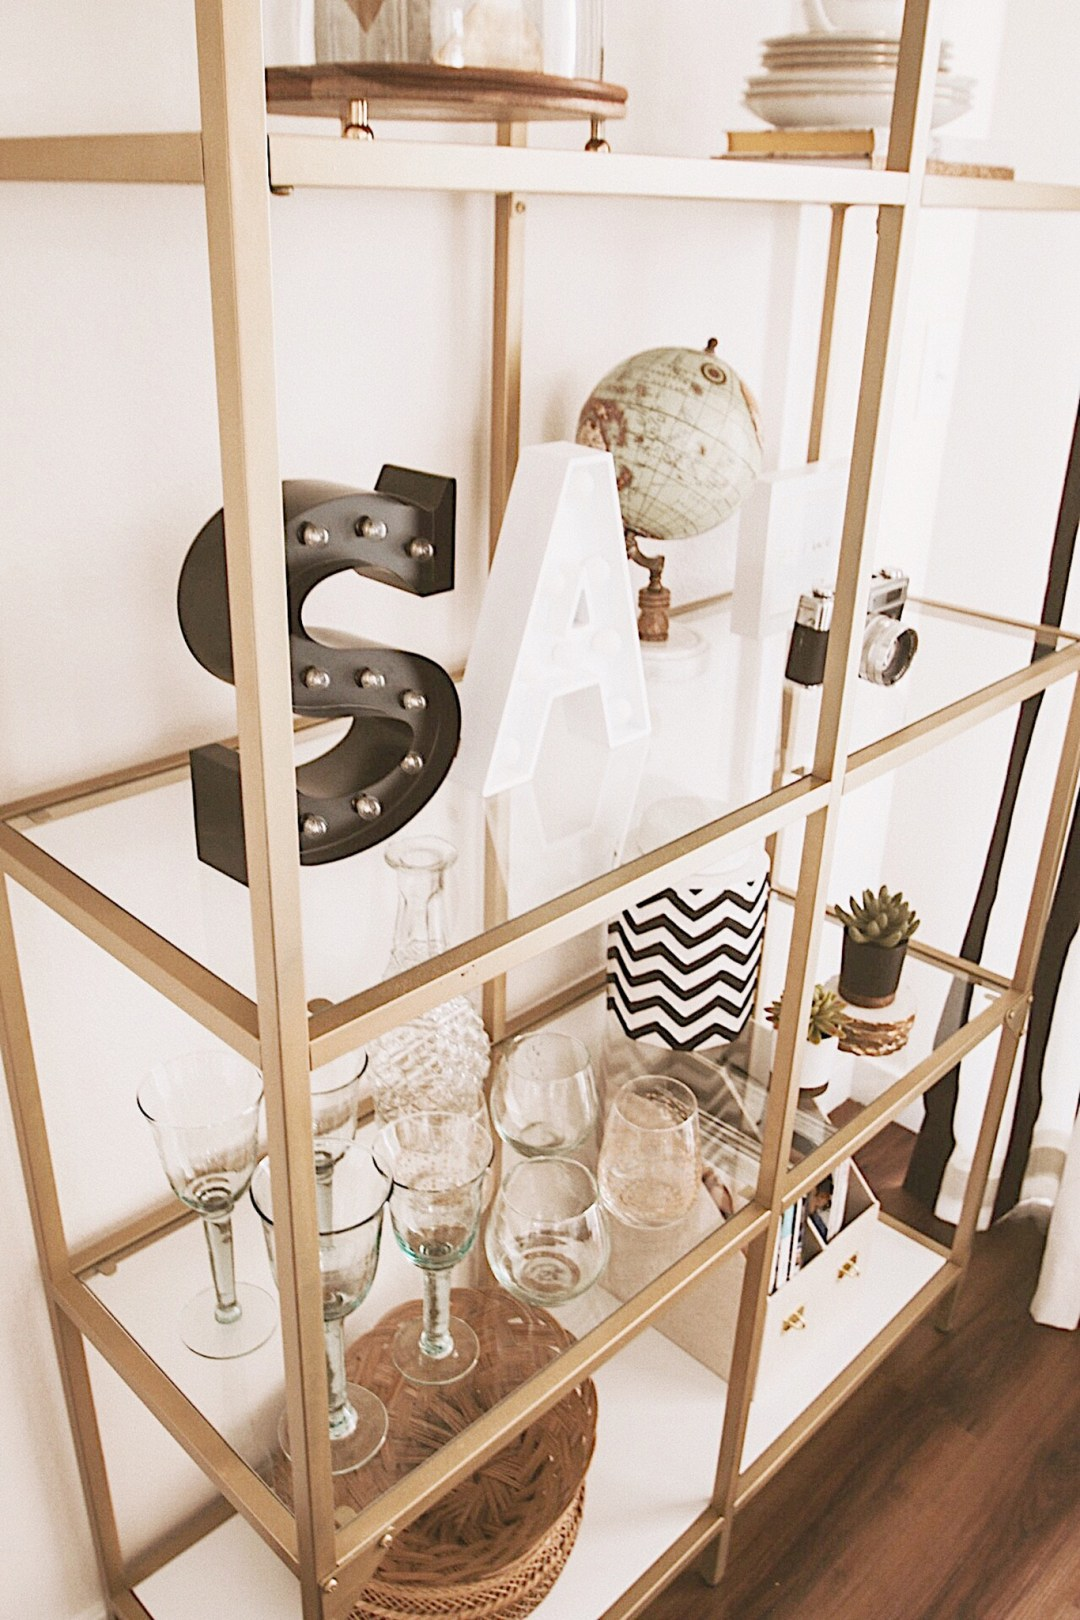 Alena Gidenko of modaprints.com shares her home decor and how she decorates a small apartment